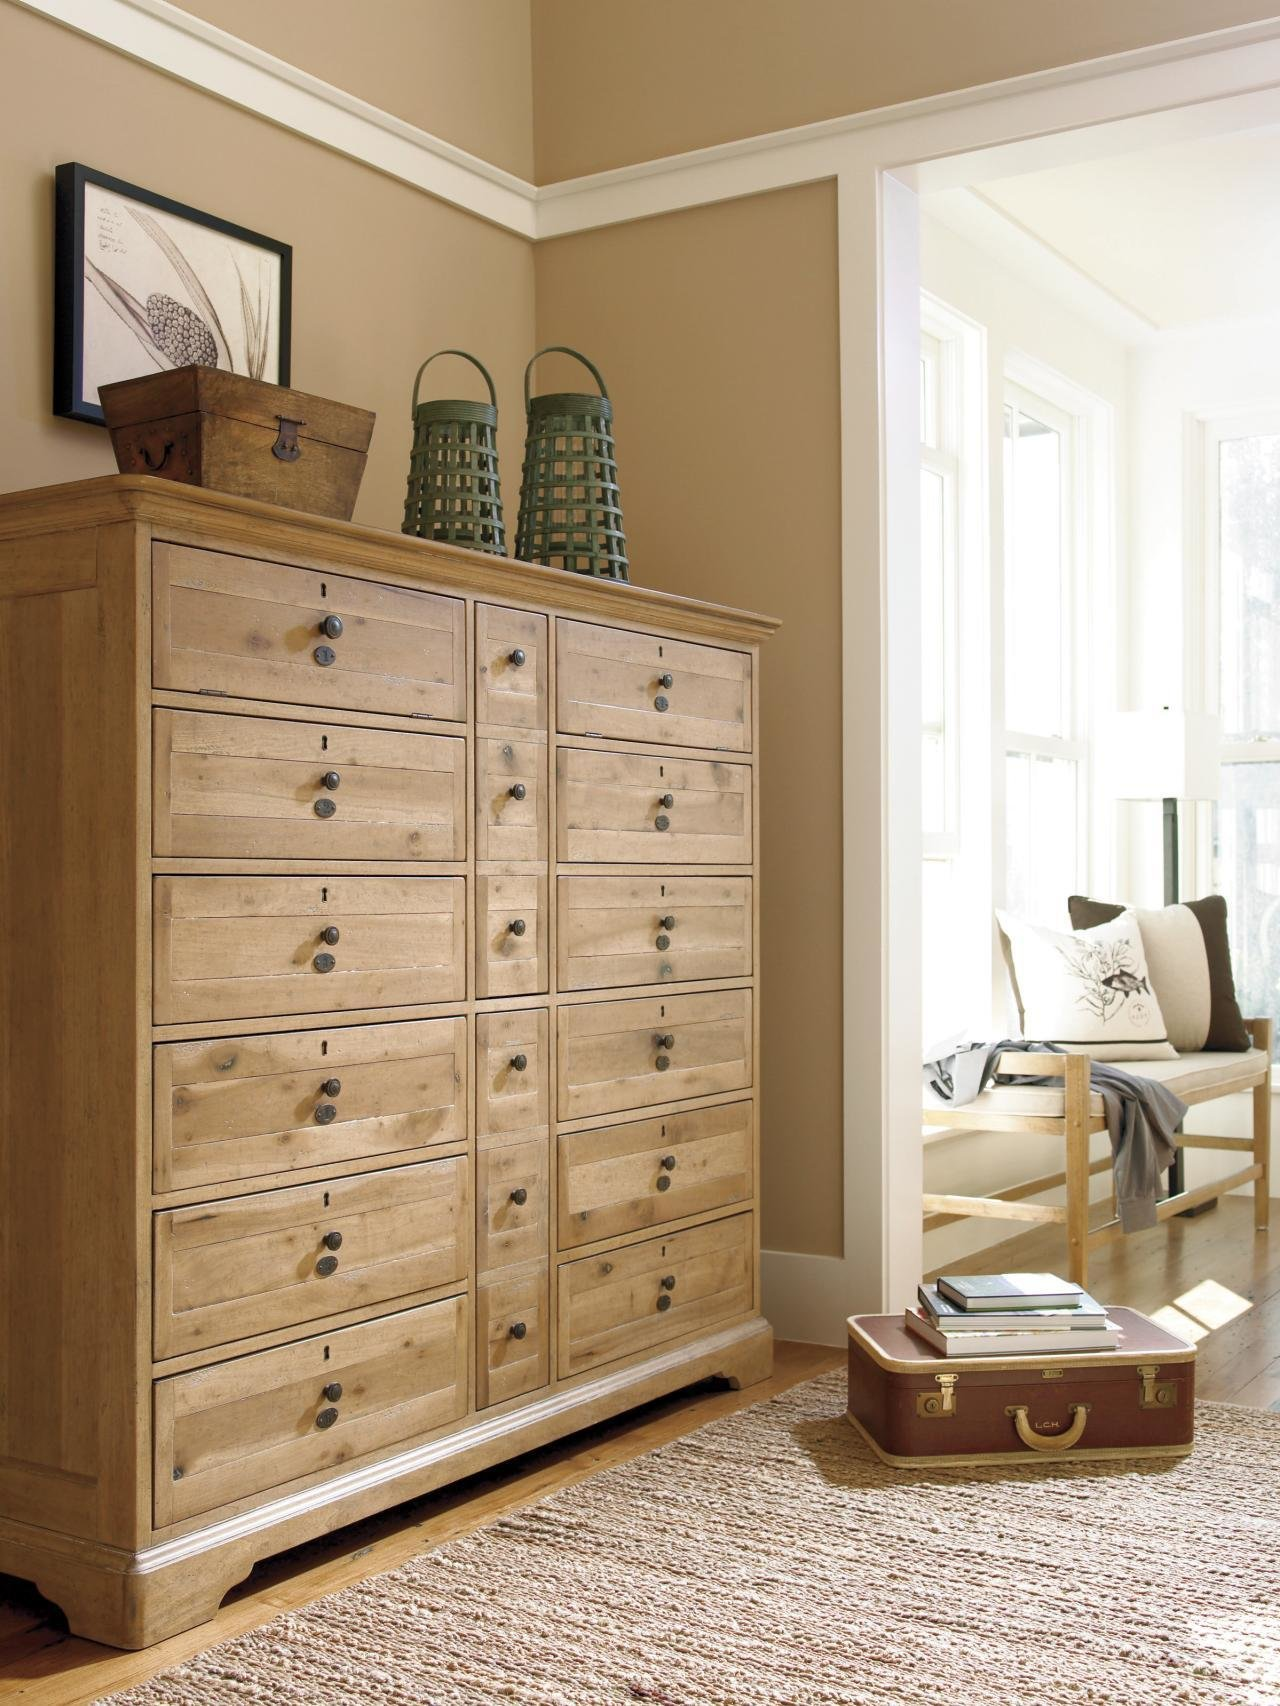 Best Seven Tips From Hgtv On How To Shop For A Dresser Hgtv With Pictures